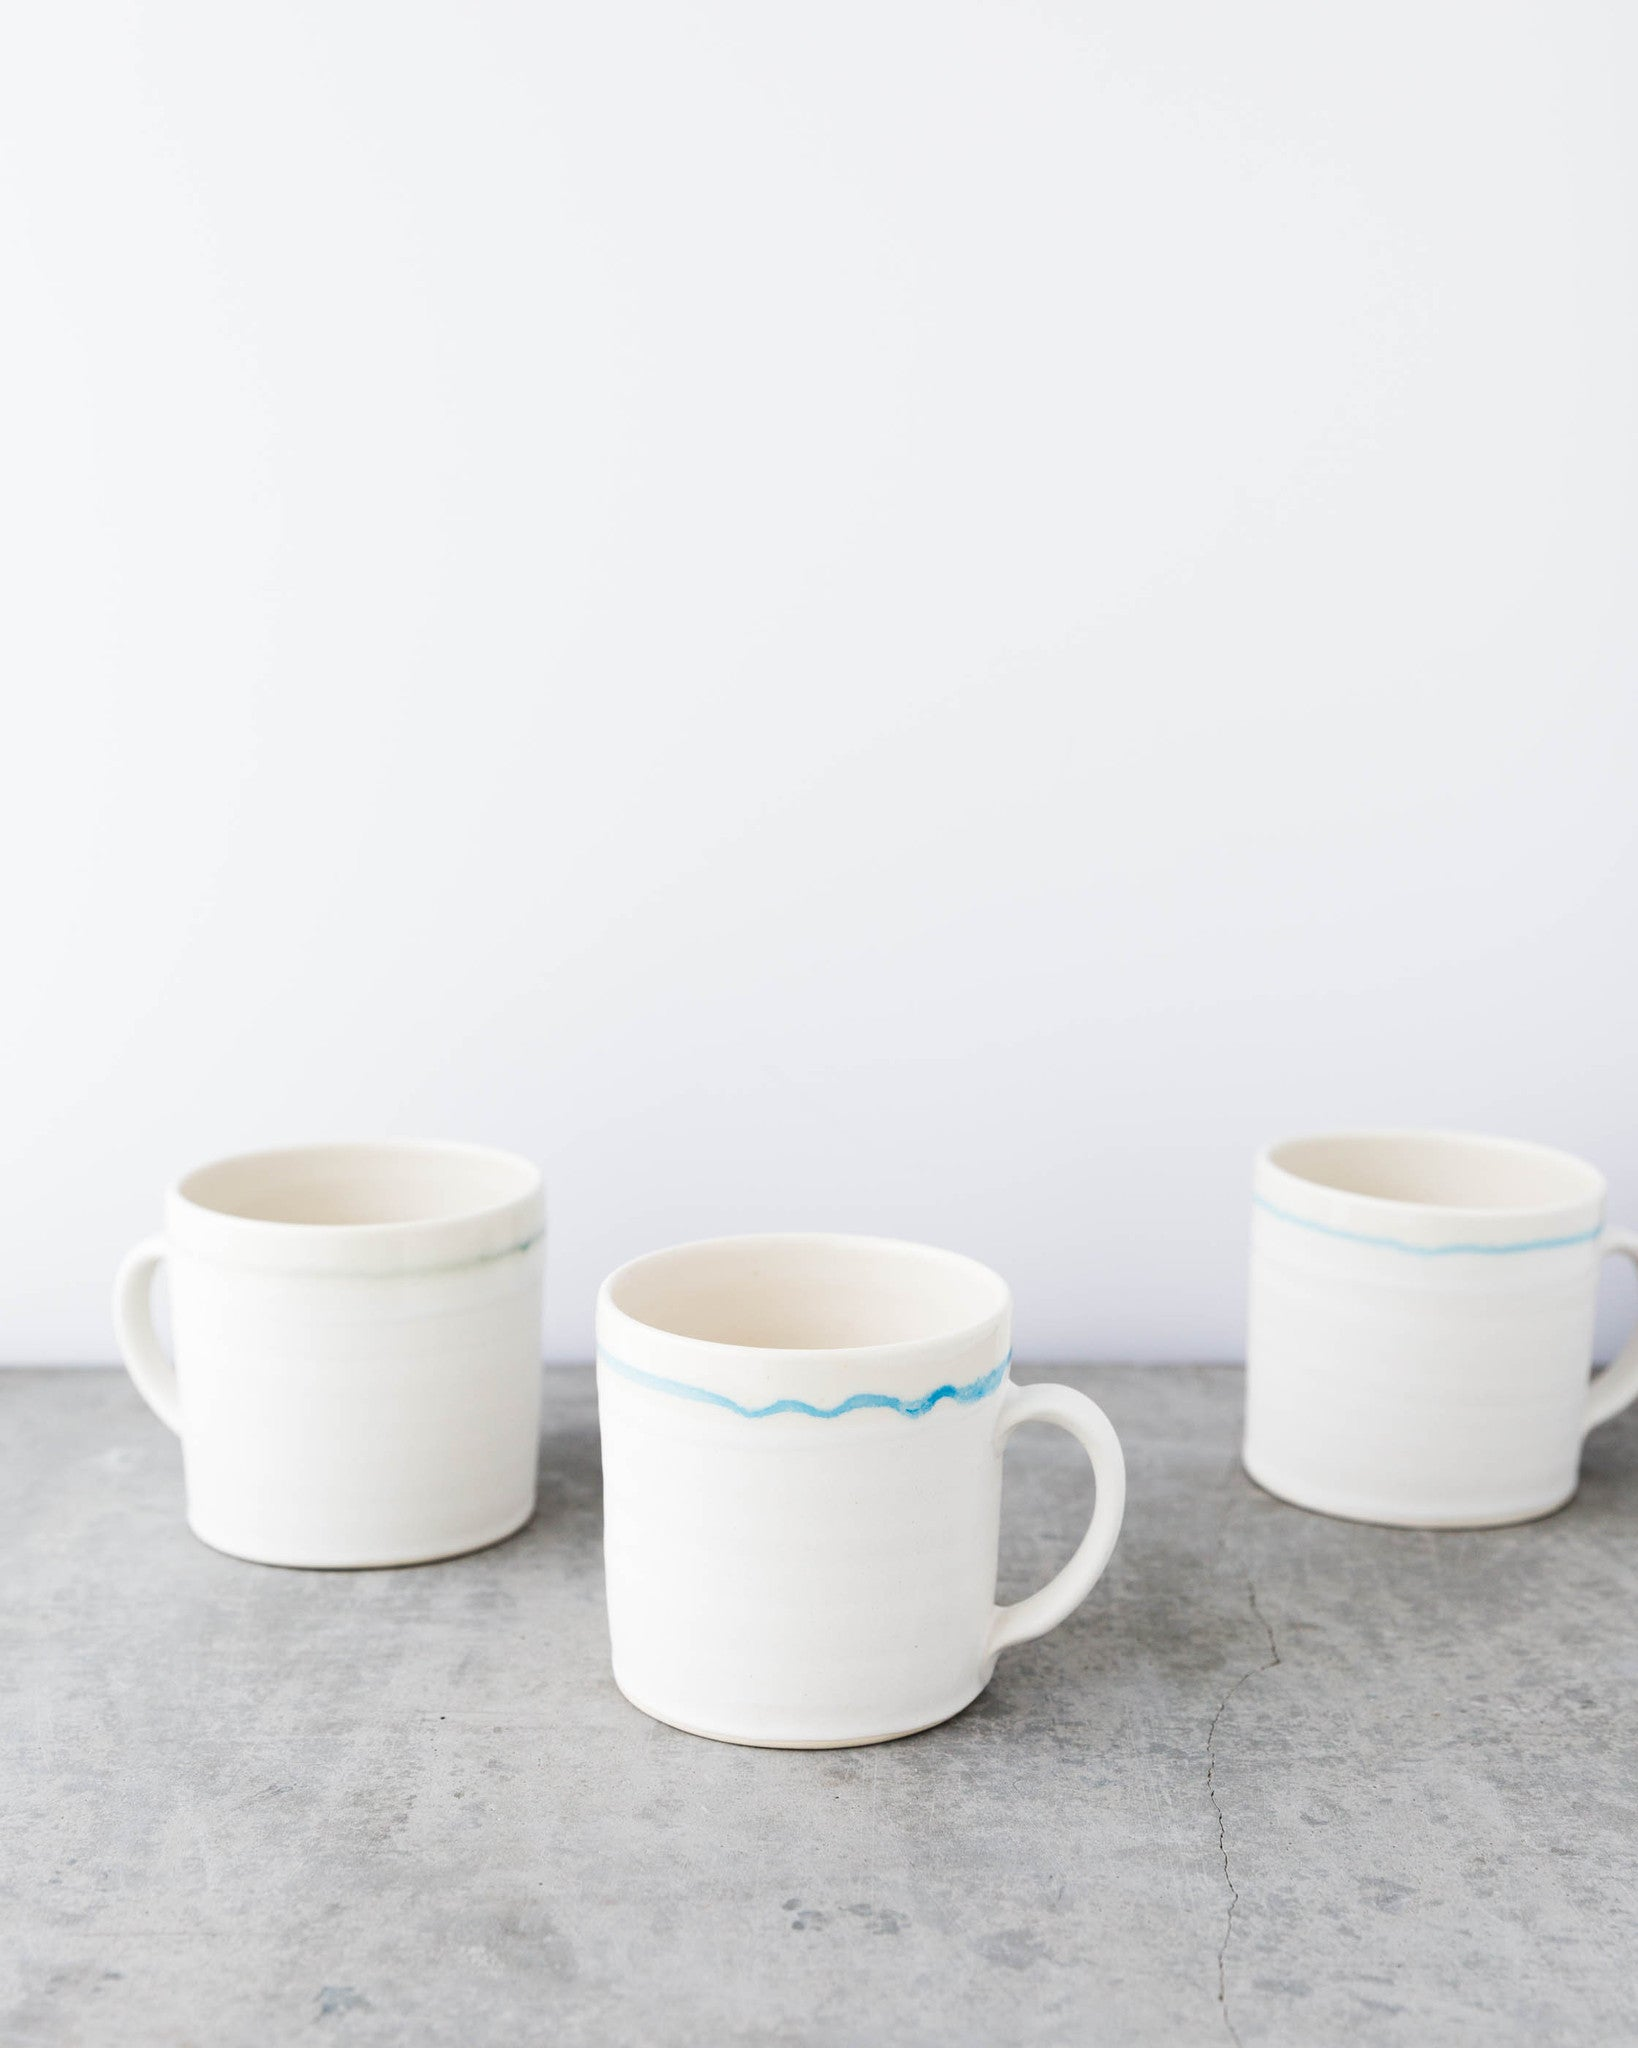 Kalika Bowlby 1920 Mug in Light Blue Stripe